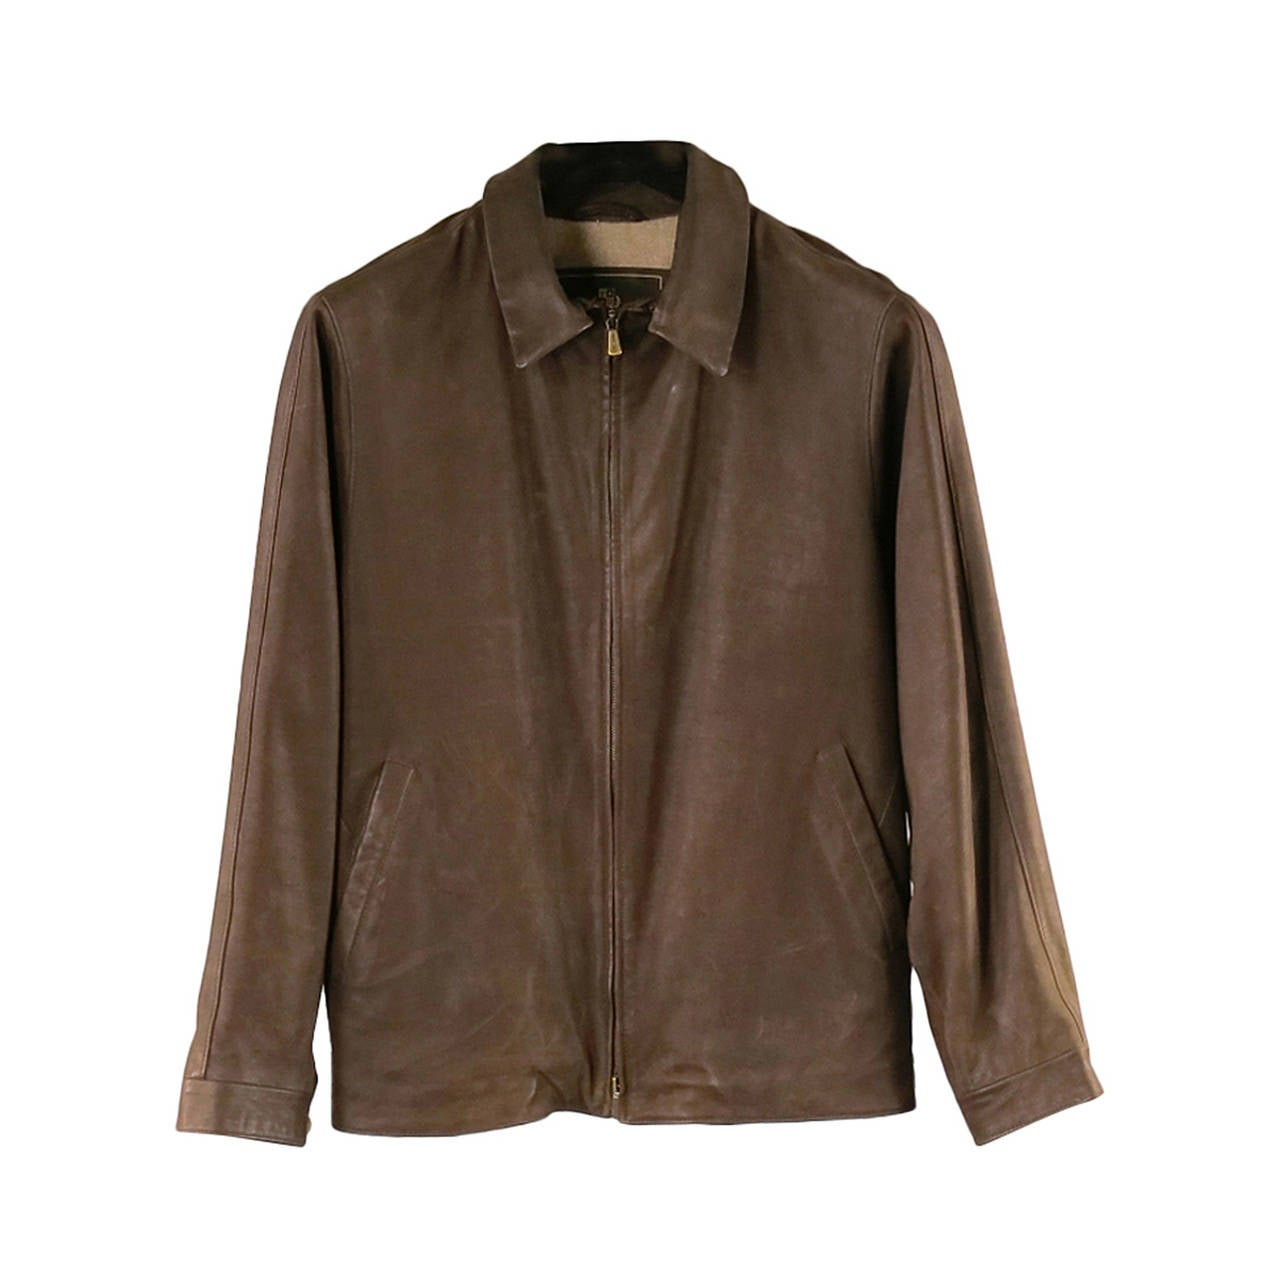 Loro Piana Jacket / Coat - Leather Brown Jacket with Zip Off Collar For Sale